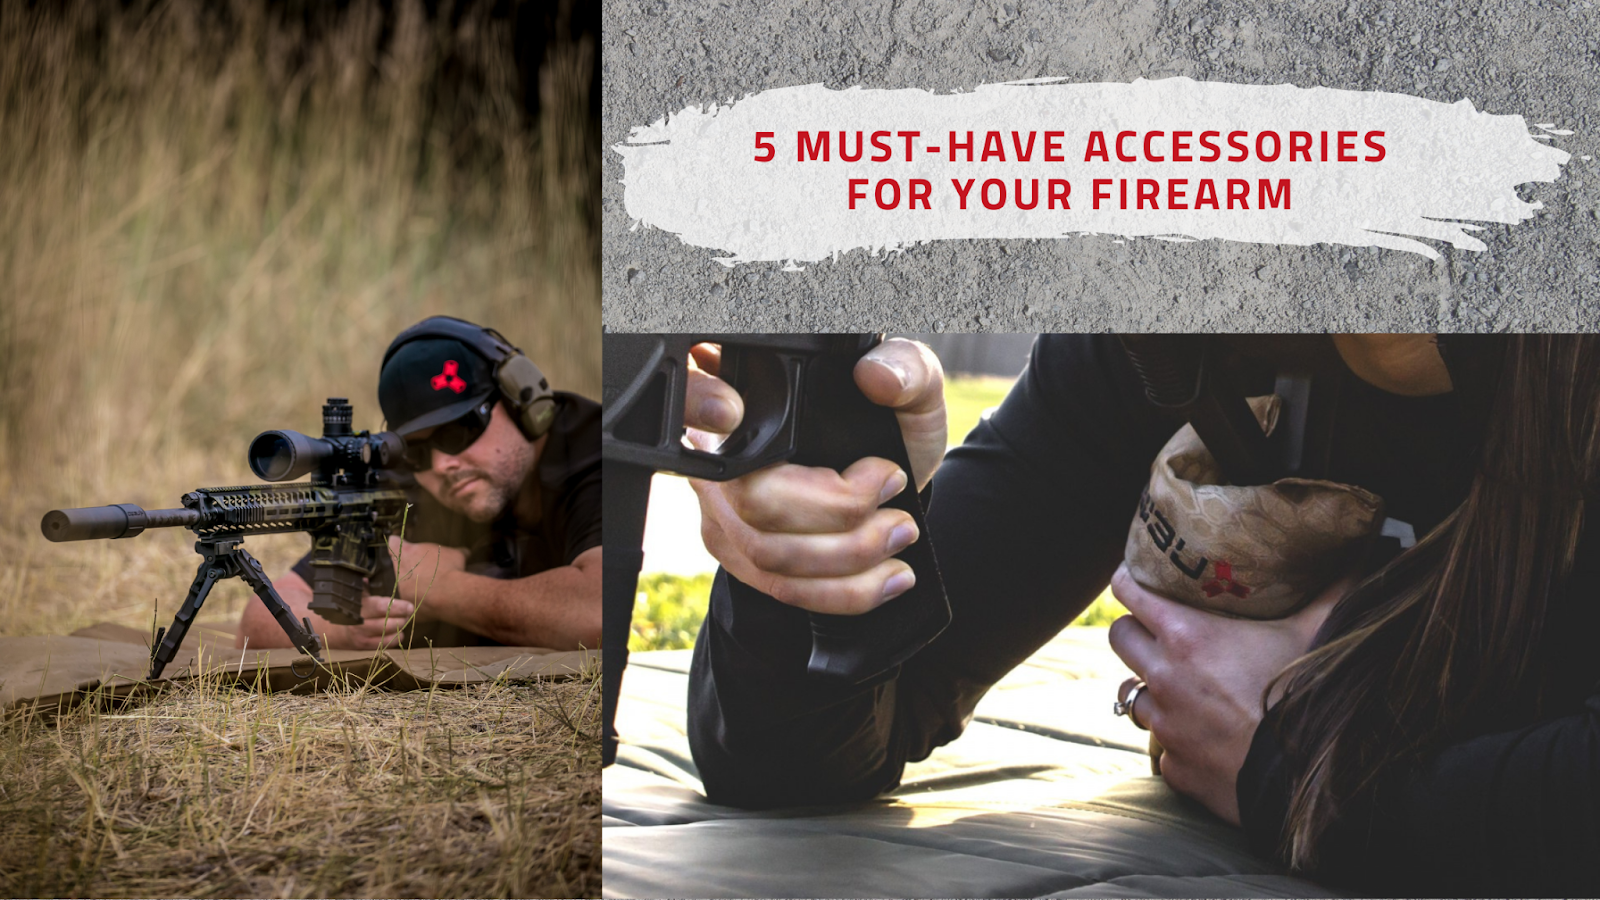 5 Must-Have Accessories For Your Firearm